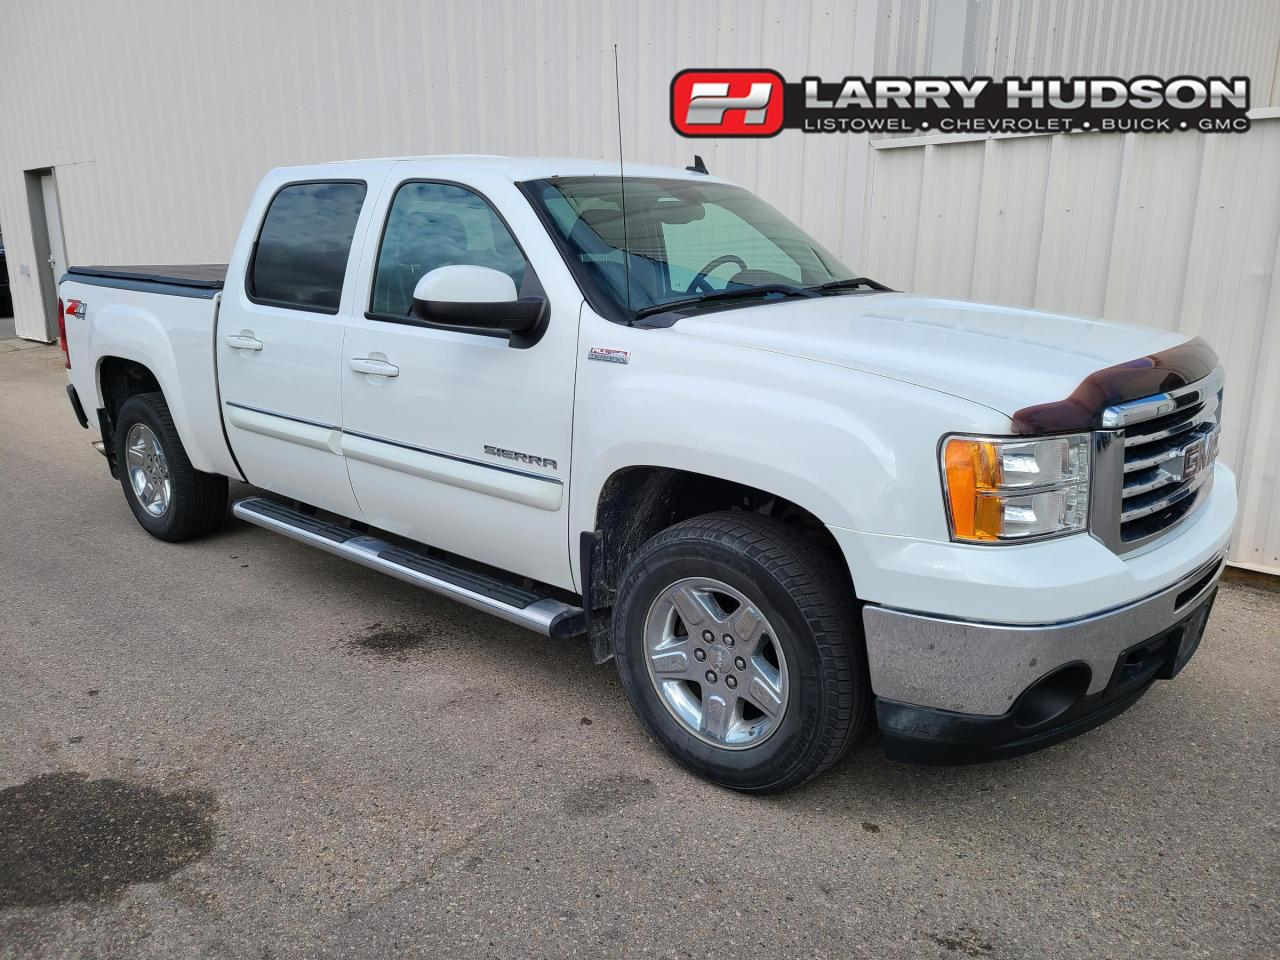 used 2011 gmc sierra 1500 slt crew cab all terrain remote start soft tonneau cover for sale in listowel, ontario carpages.ca